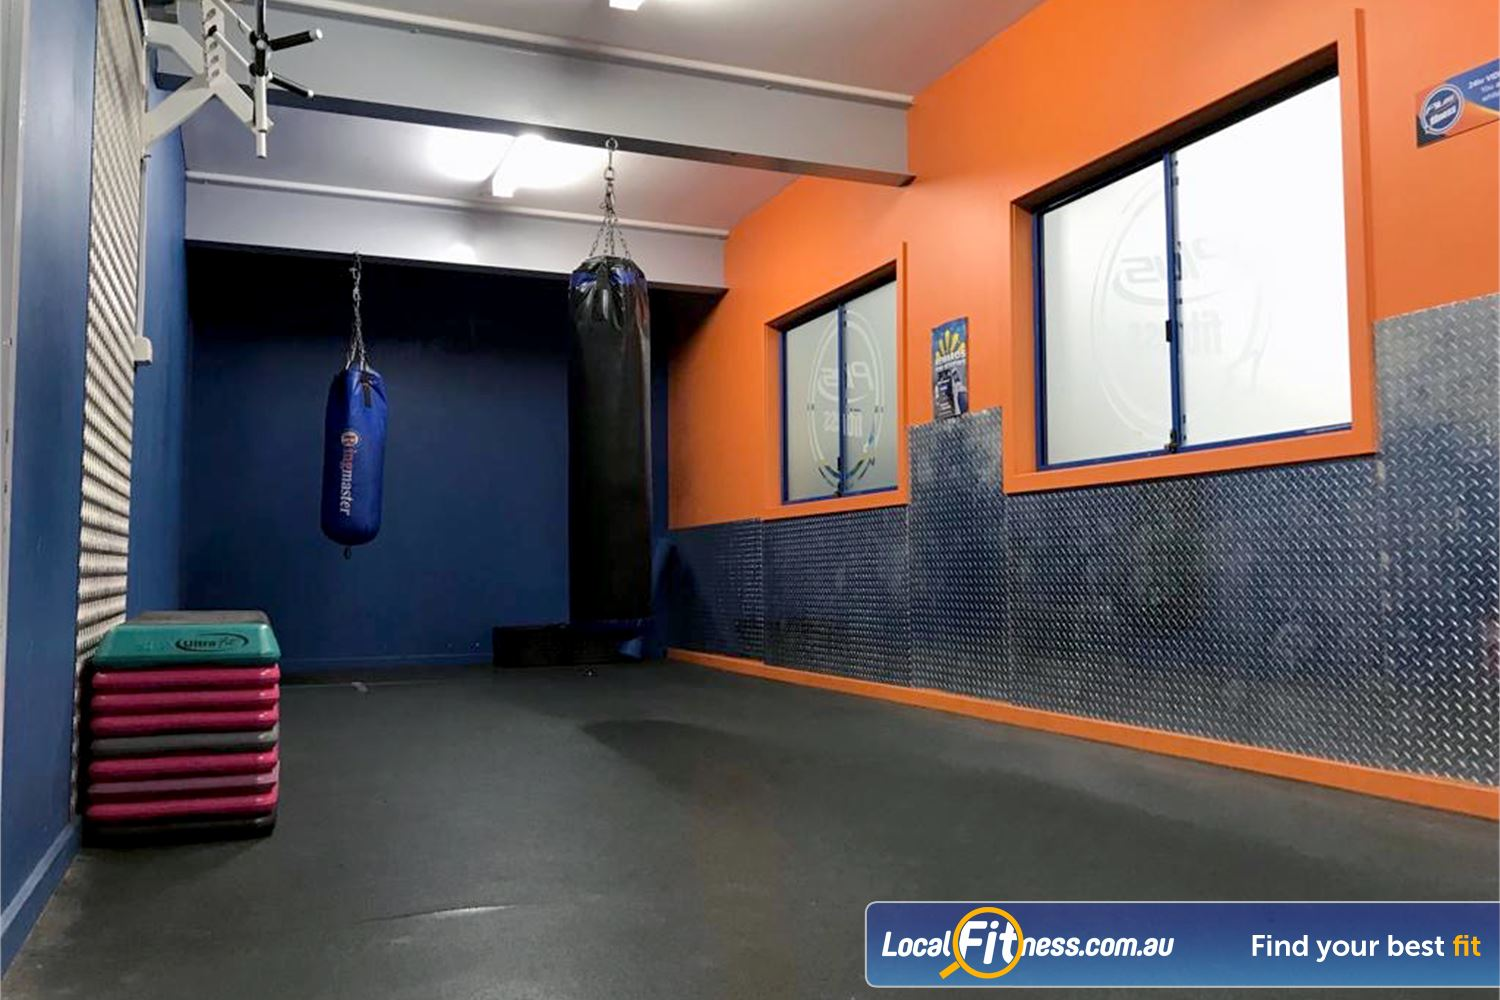 Plus Fitness Health Clubs Near Baulkham Hills Our Northmead gym a boxing area with heavy bags.